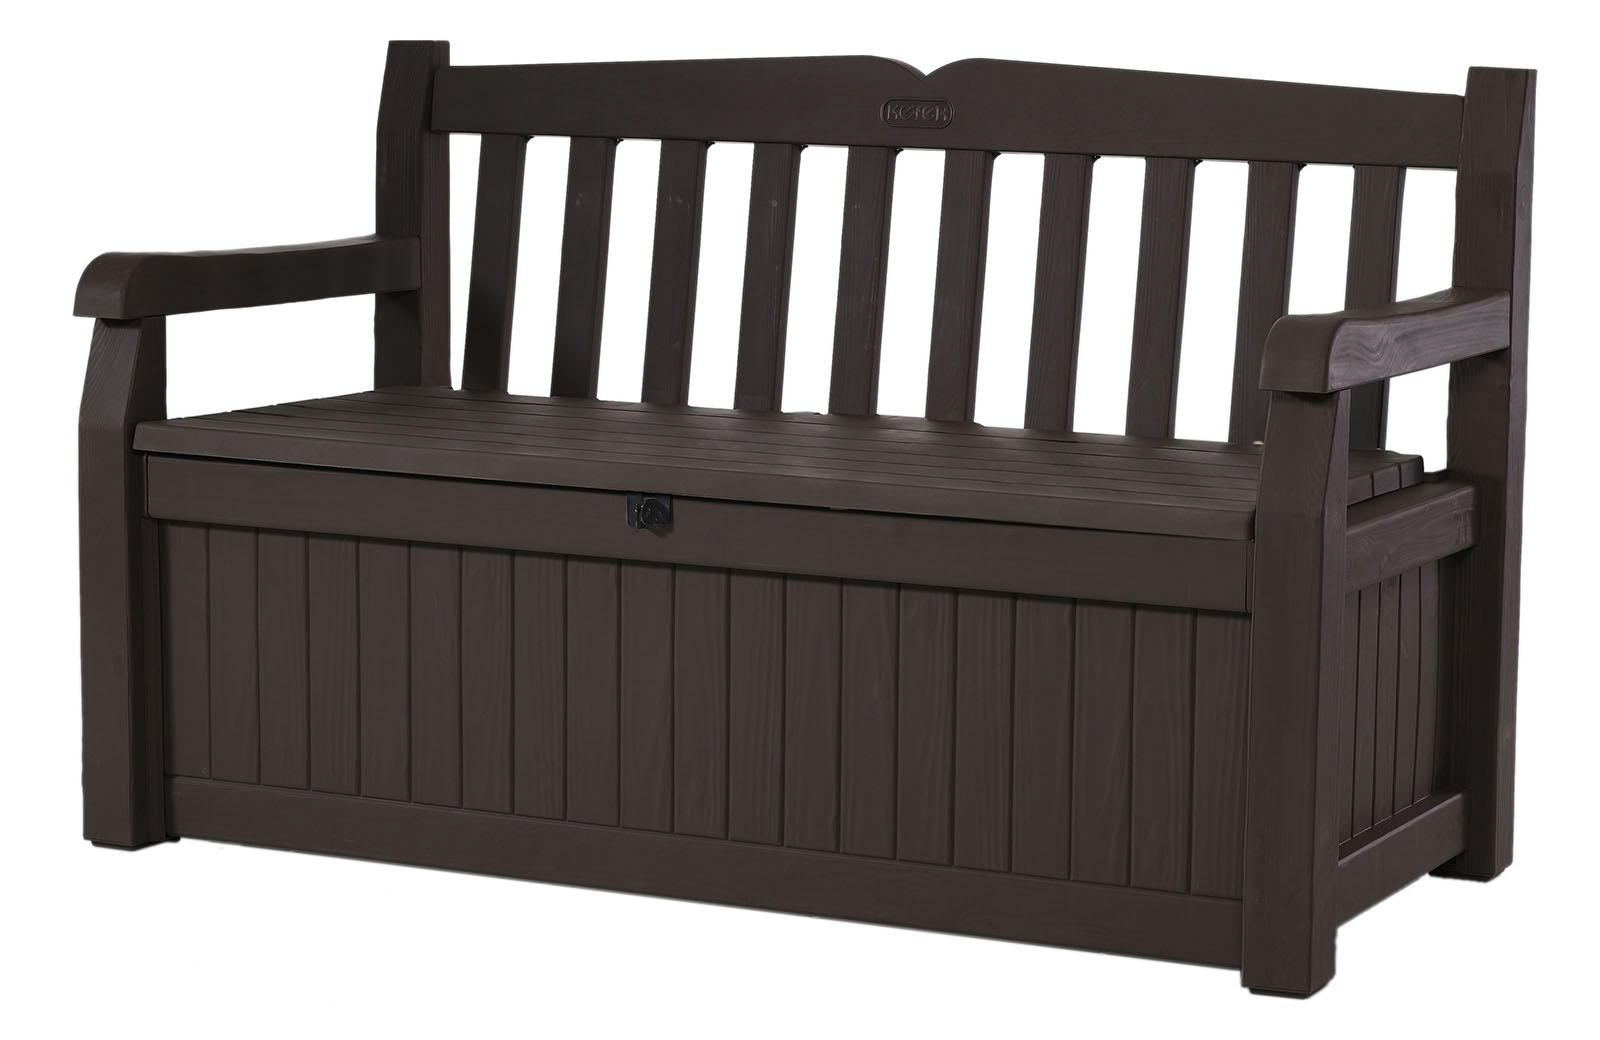 Keter Eden Outdoor Resin Storage Bench, All Weather Plastic Seating And  Storage, 70